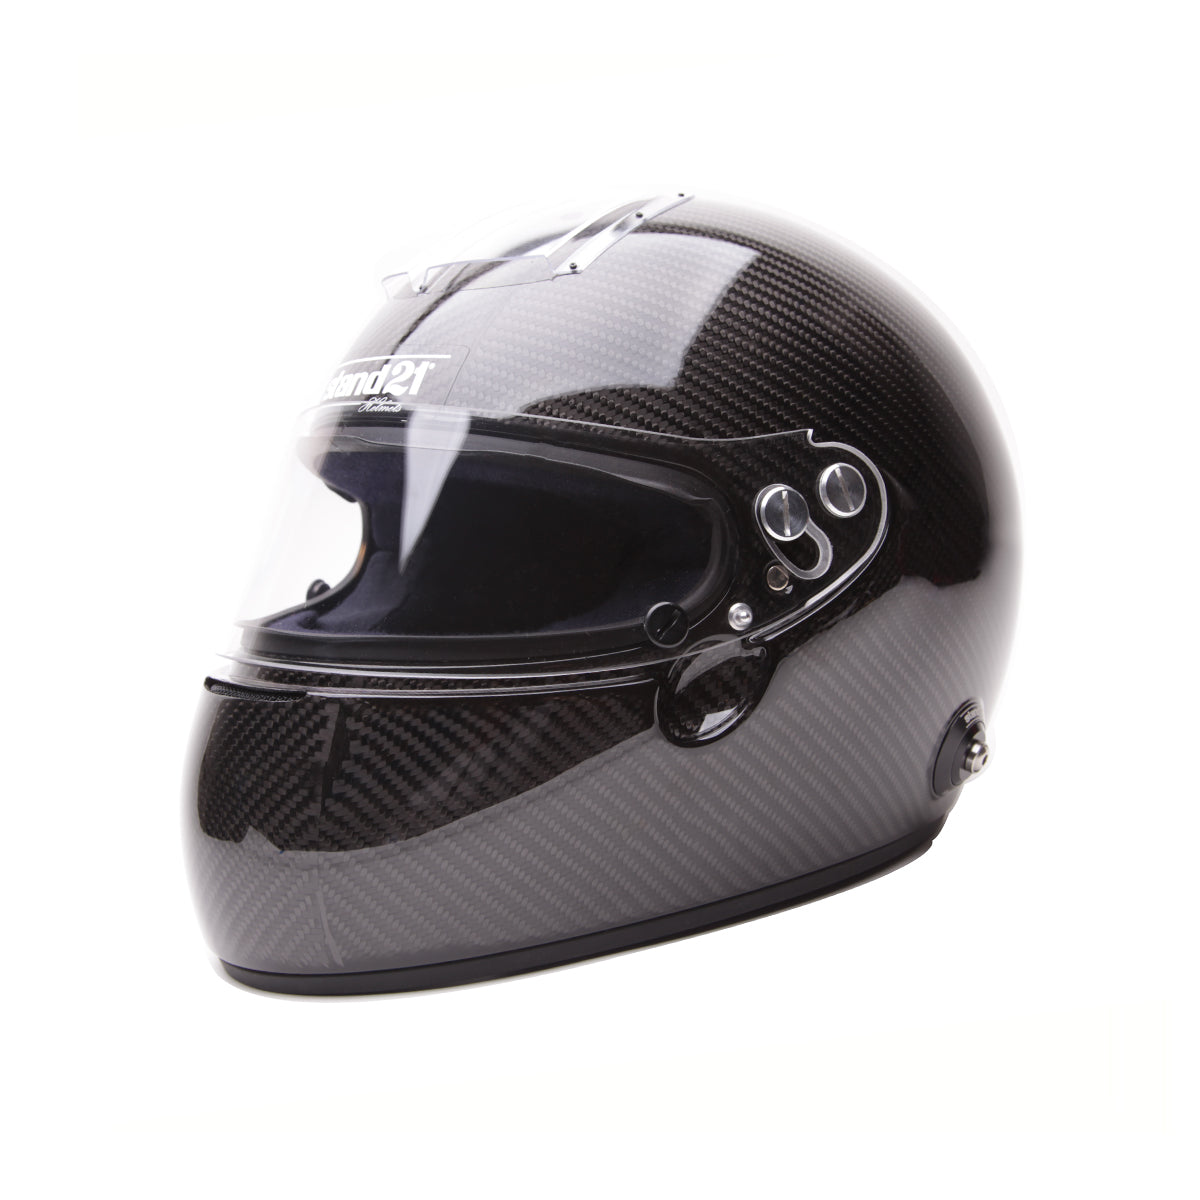 Racelite Optics -  Racelite Designs Stand 21 Racewear IVOS Helmet Tearoffs Detailed View 1